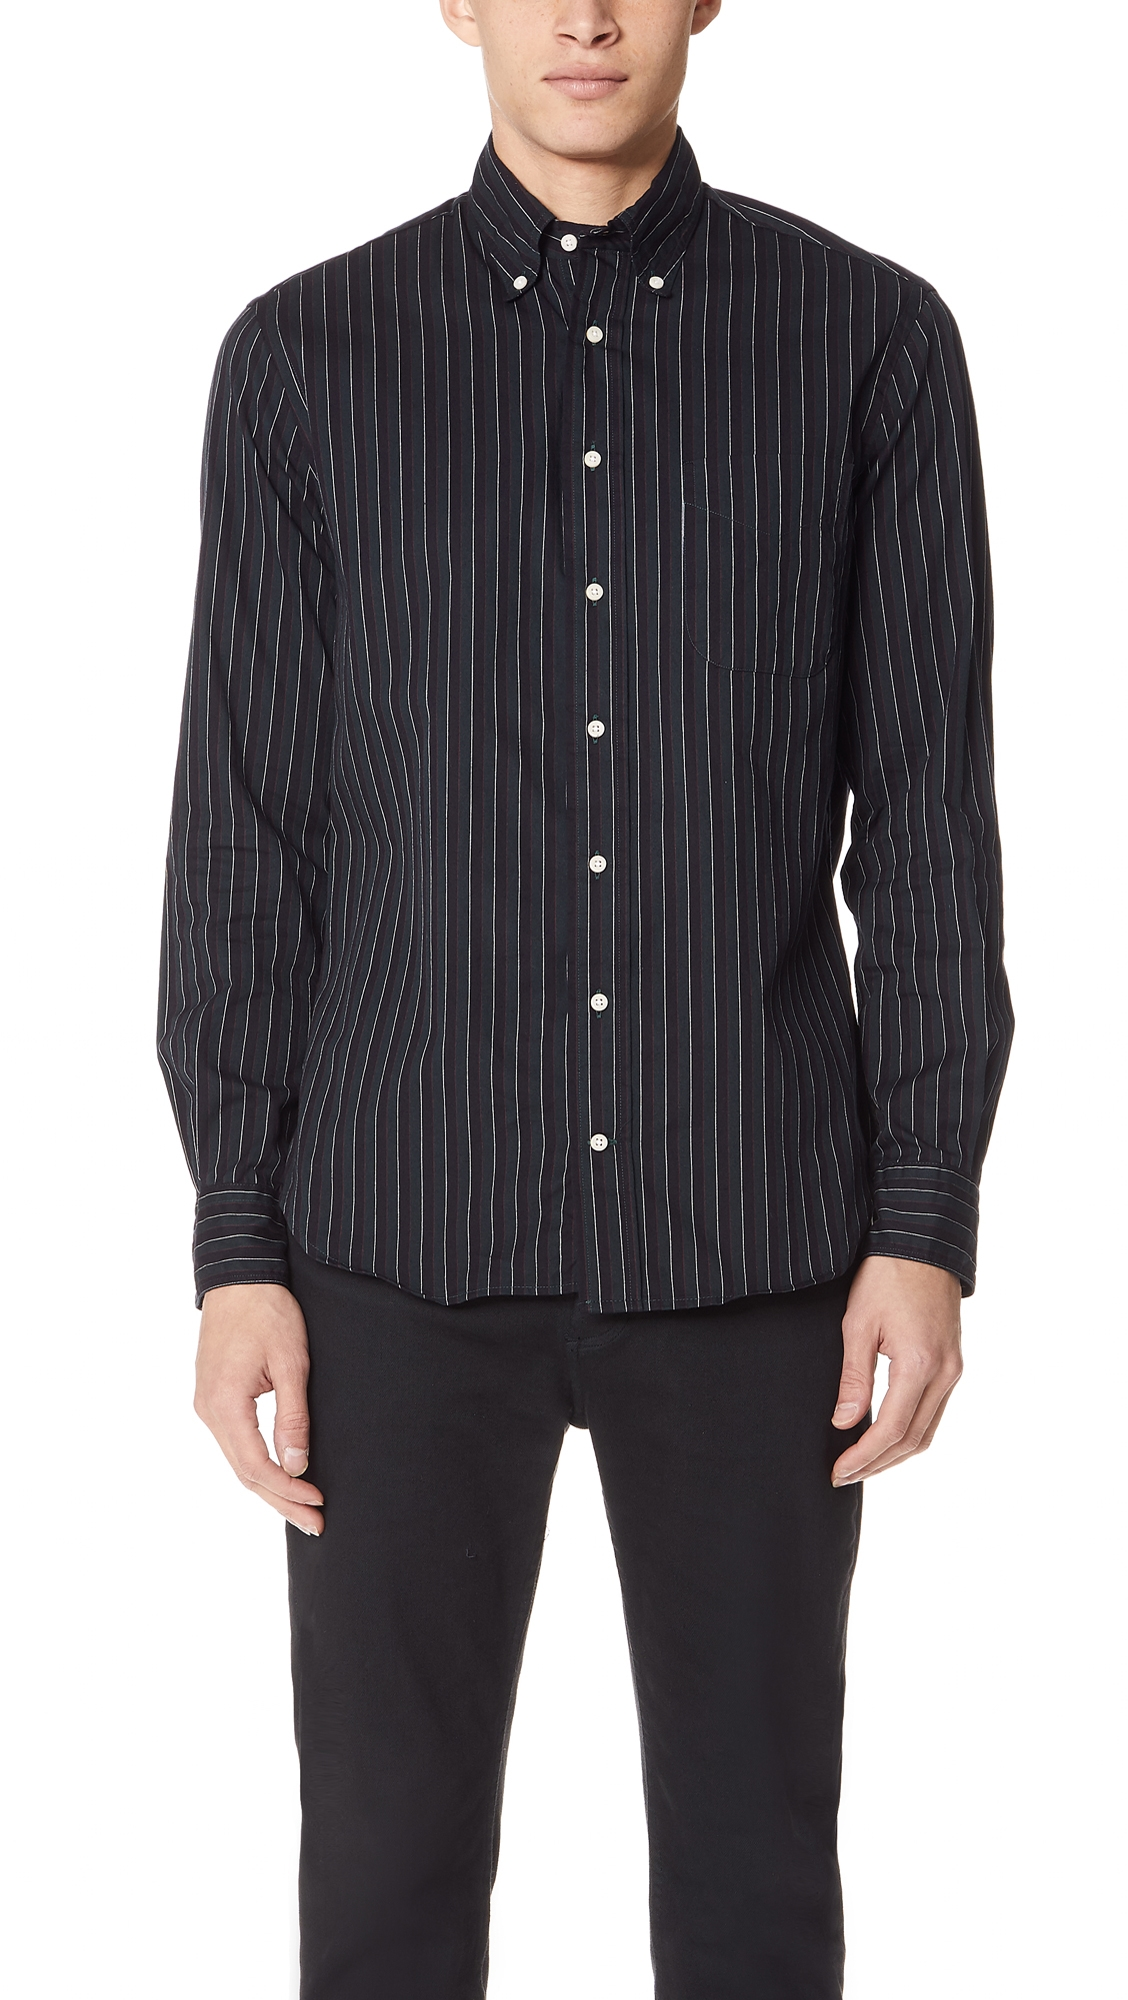 GITMAN VINTAGE STRIPED BUTTON DOWN SHIRT